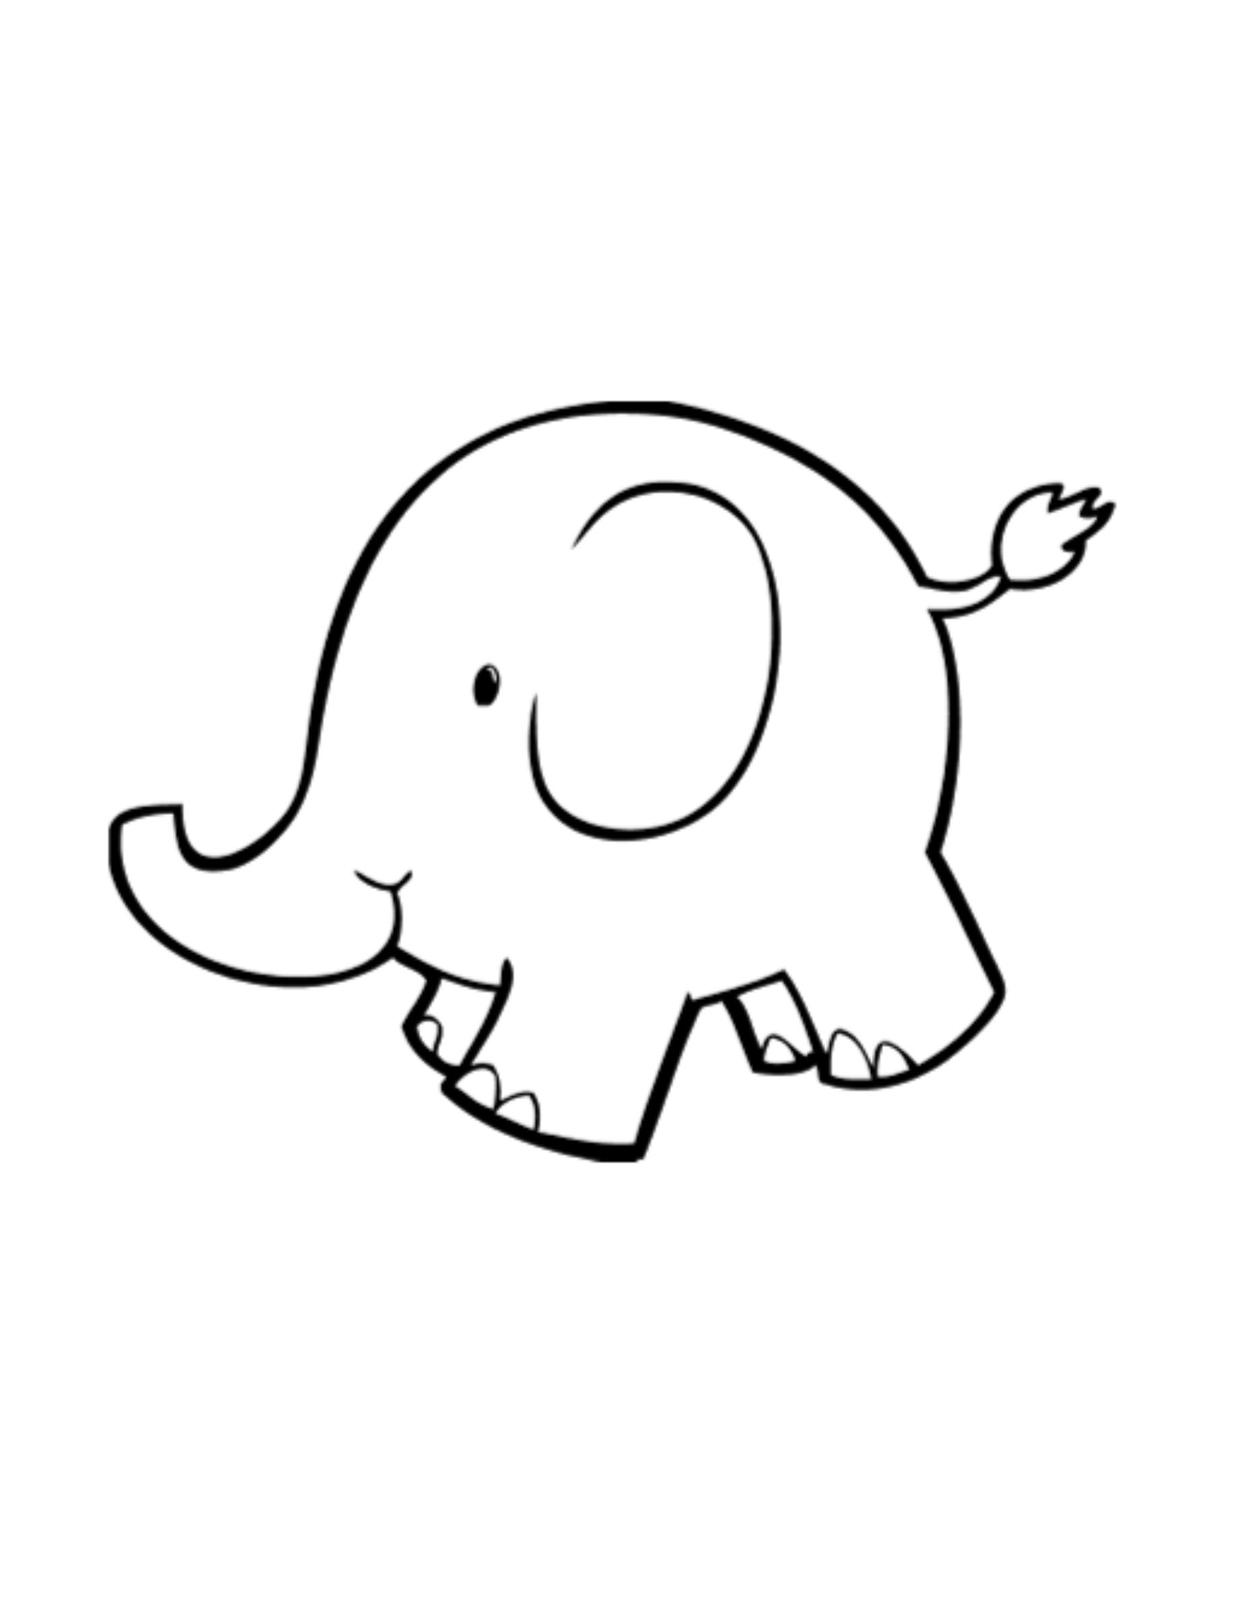 image regarding Elephant Outline Printable titled Elephant Determine Drawing at  Absolutely free for